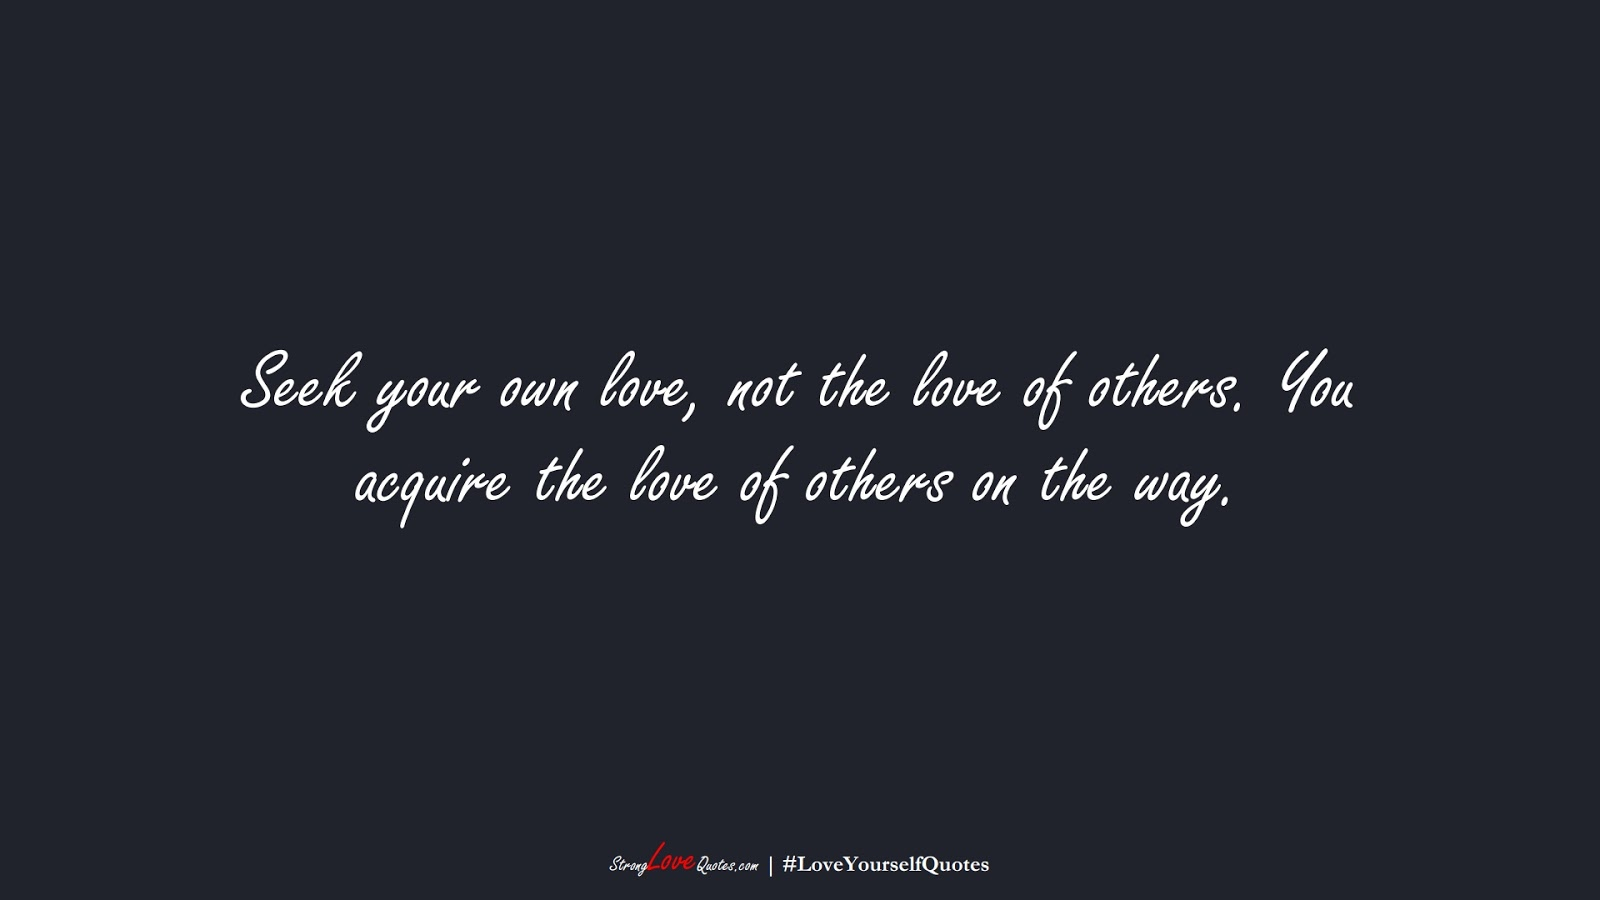 Seek your own love, not the love of others. You acquire the love of others on the way.FALSE